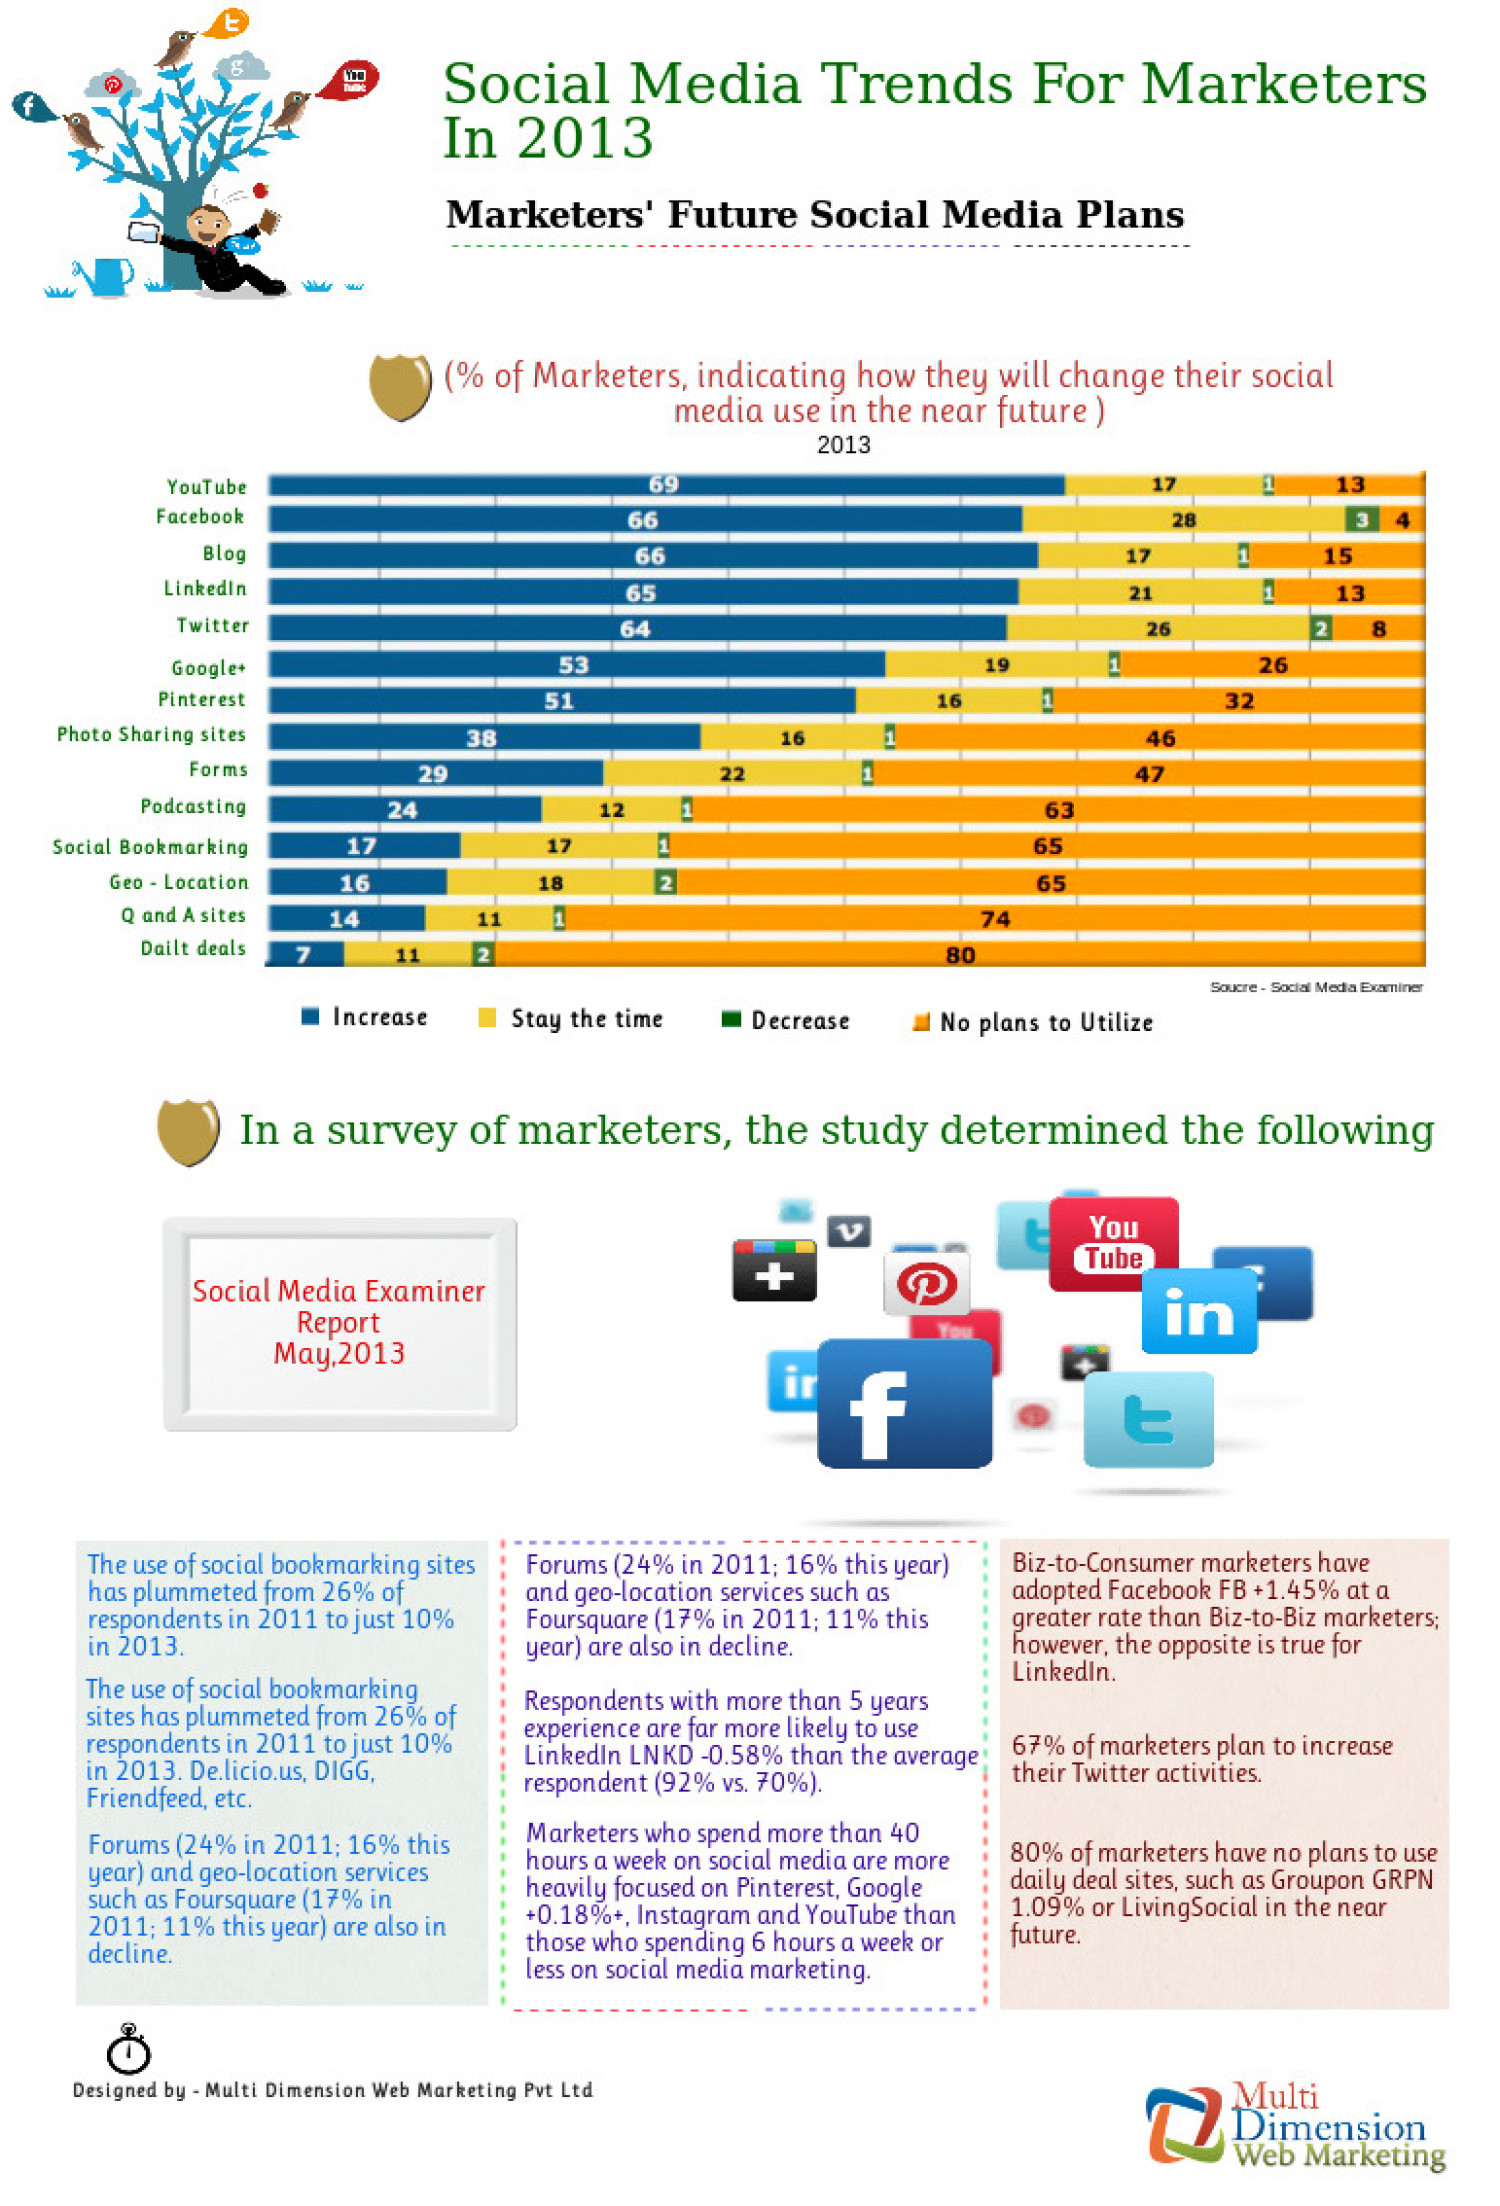 Social Media Trends For Marketers In 2013 Infographic